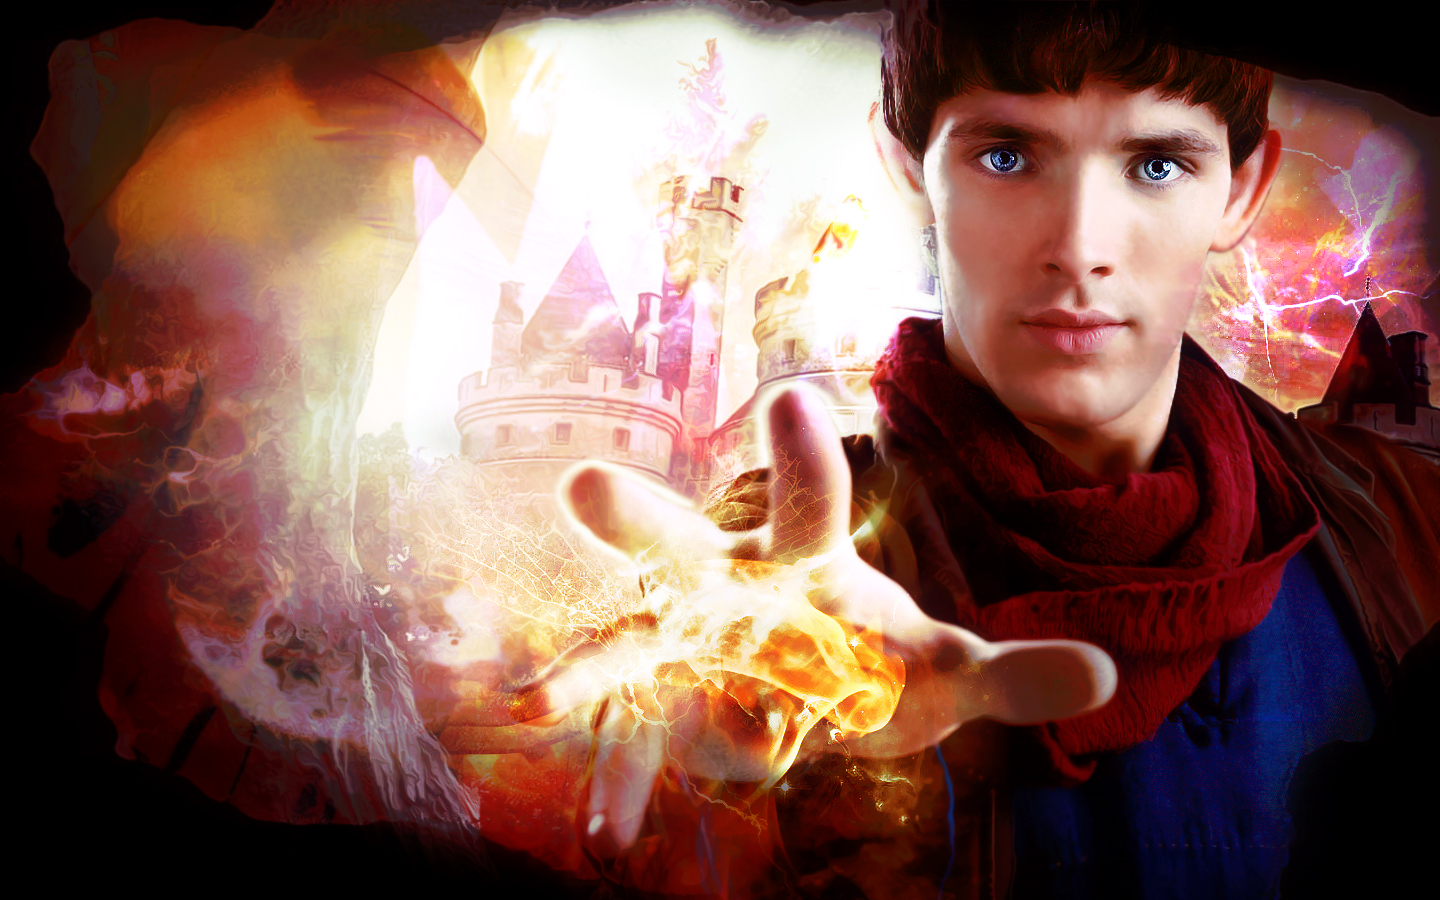 http://orig08.deviantart.net/840f/f/2010/004/9/0/merlin_promo_image_wallpaper_by_magic_ban.jpg